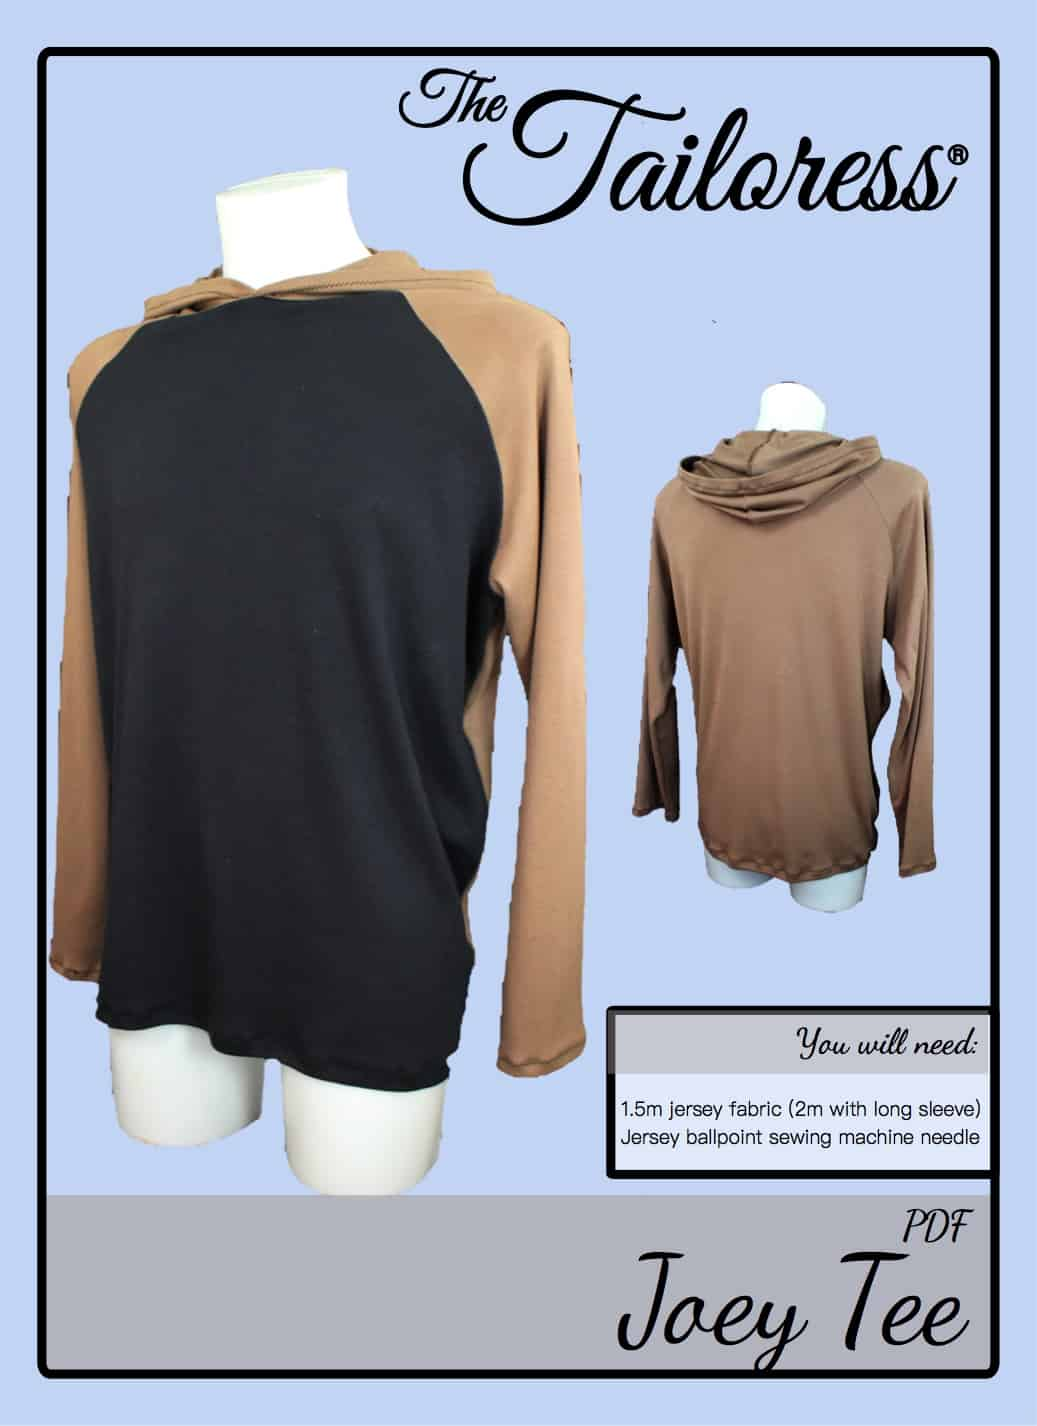 The Tailoress PDF Sewing Patterns - Joey Tee Tutorial